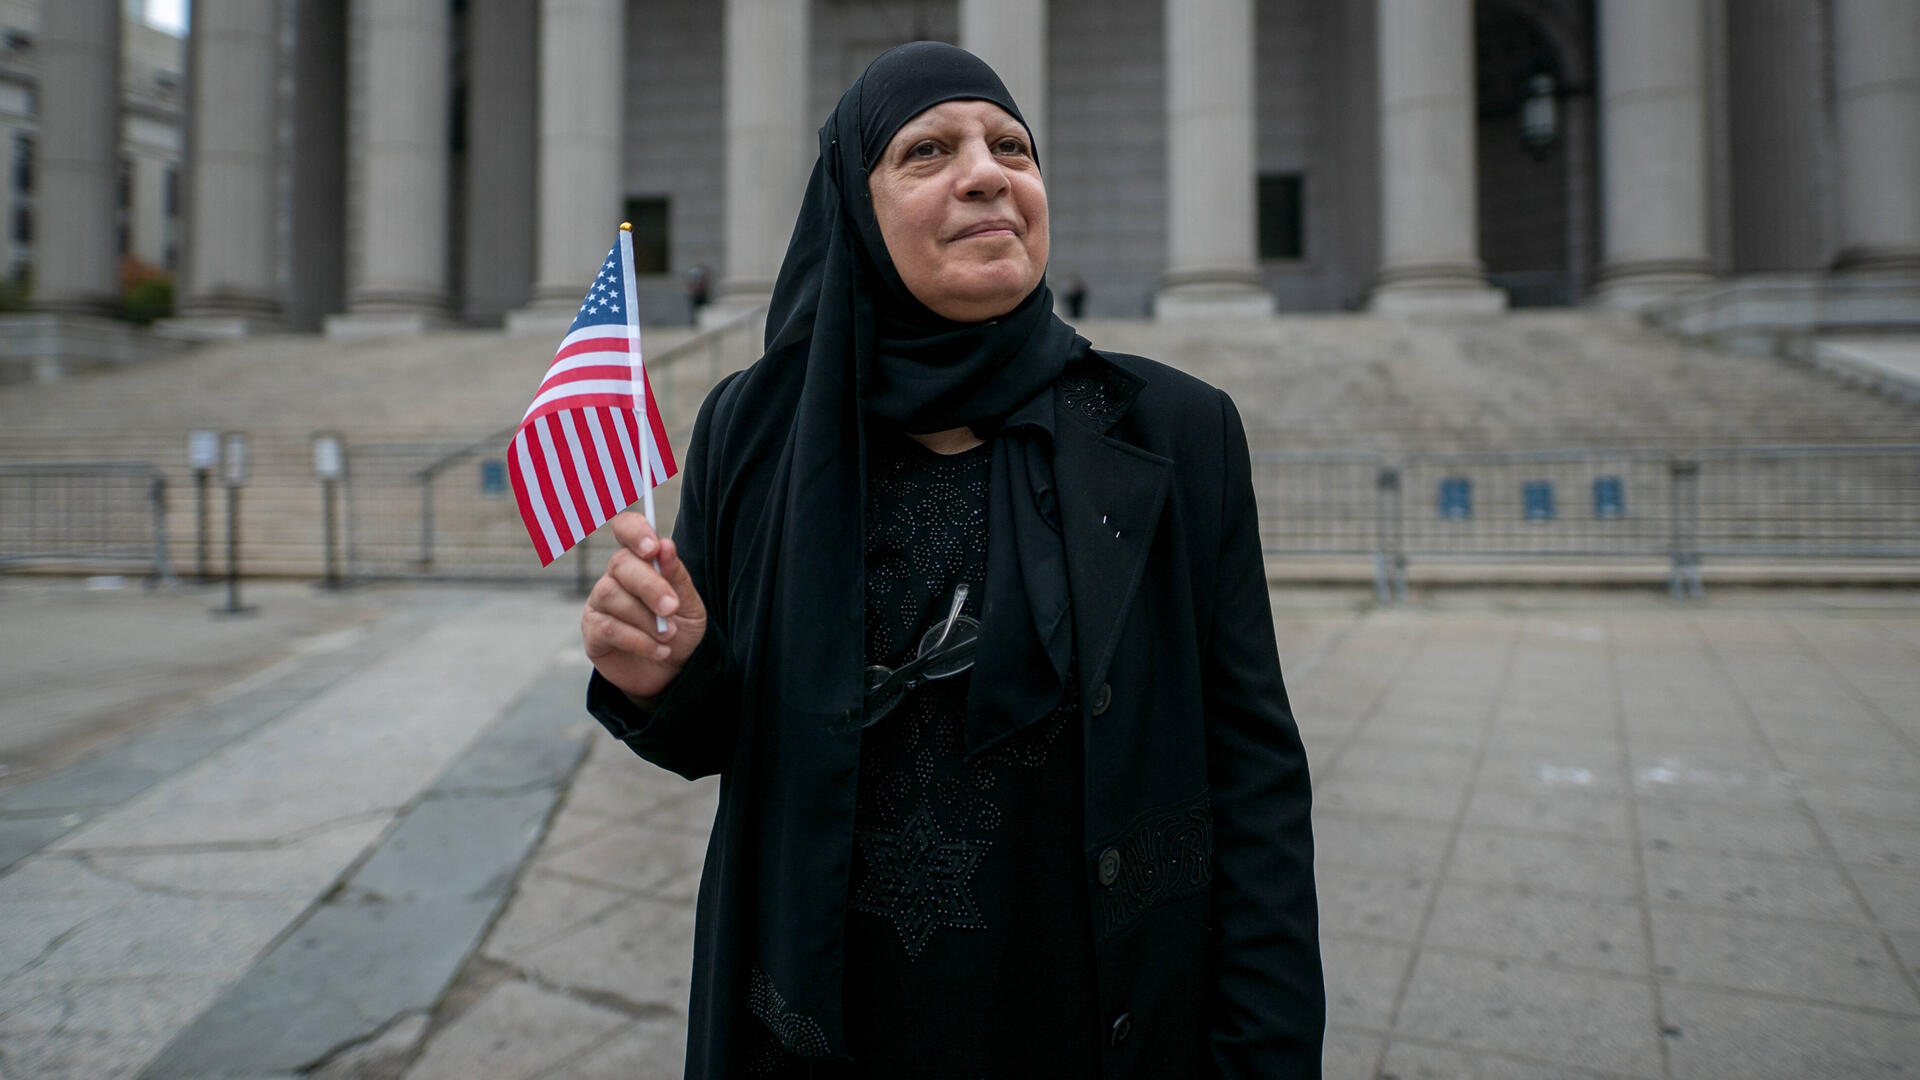 Maha al-Obaidi stands in front of a government building holding an American flag.